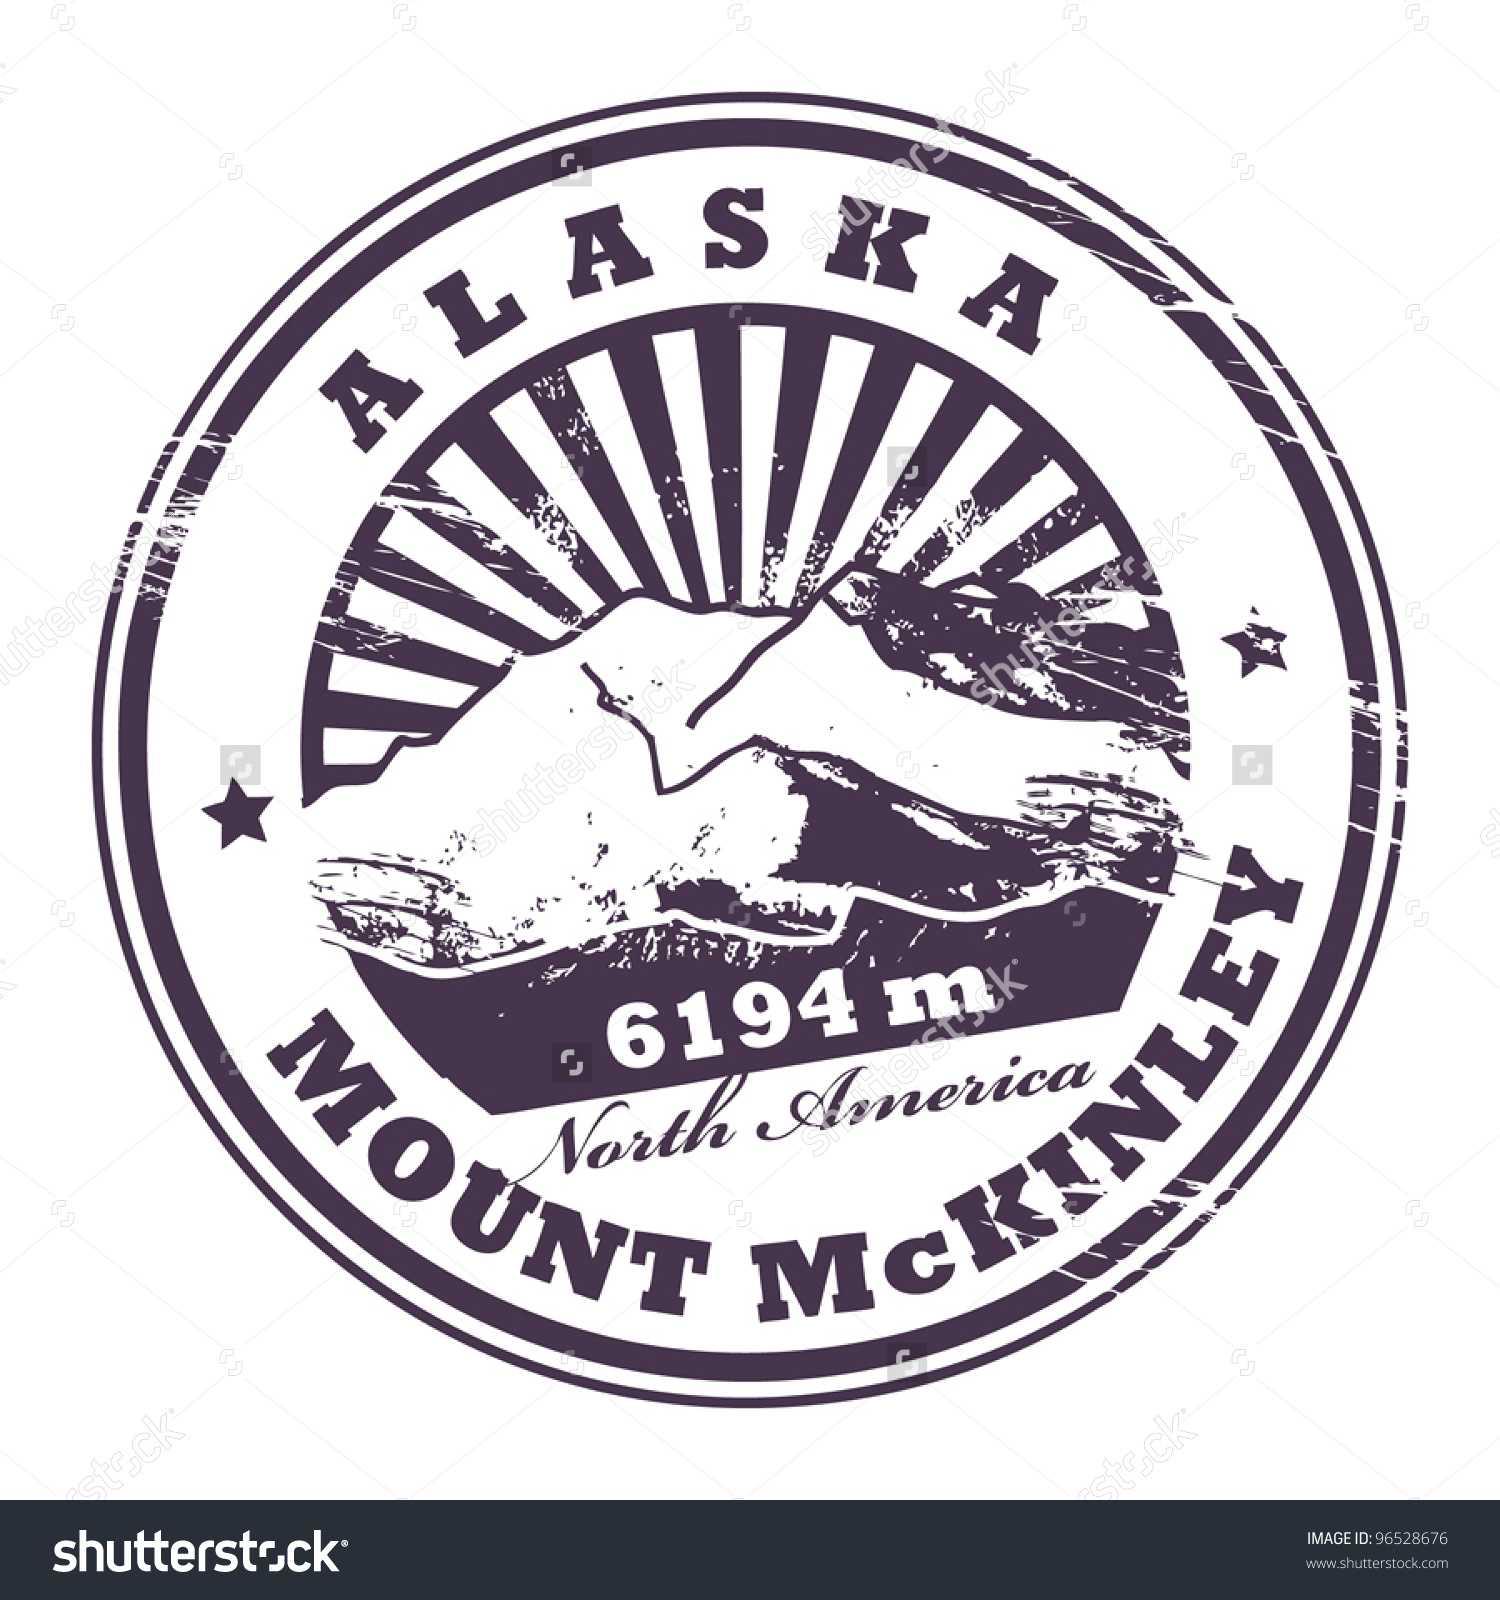 Mount McKinley clipart #17, Download drawings